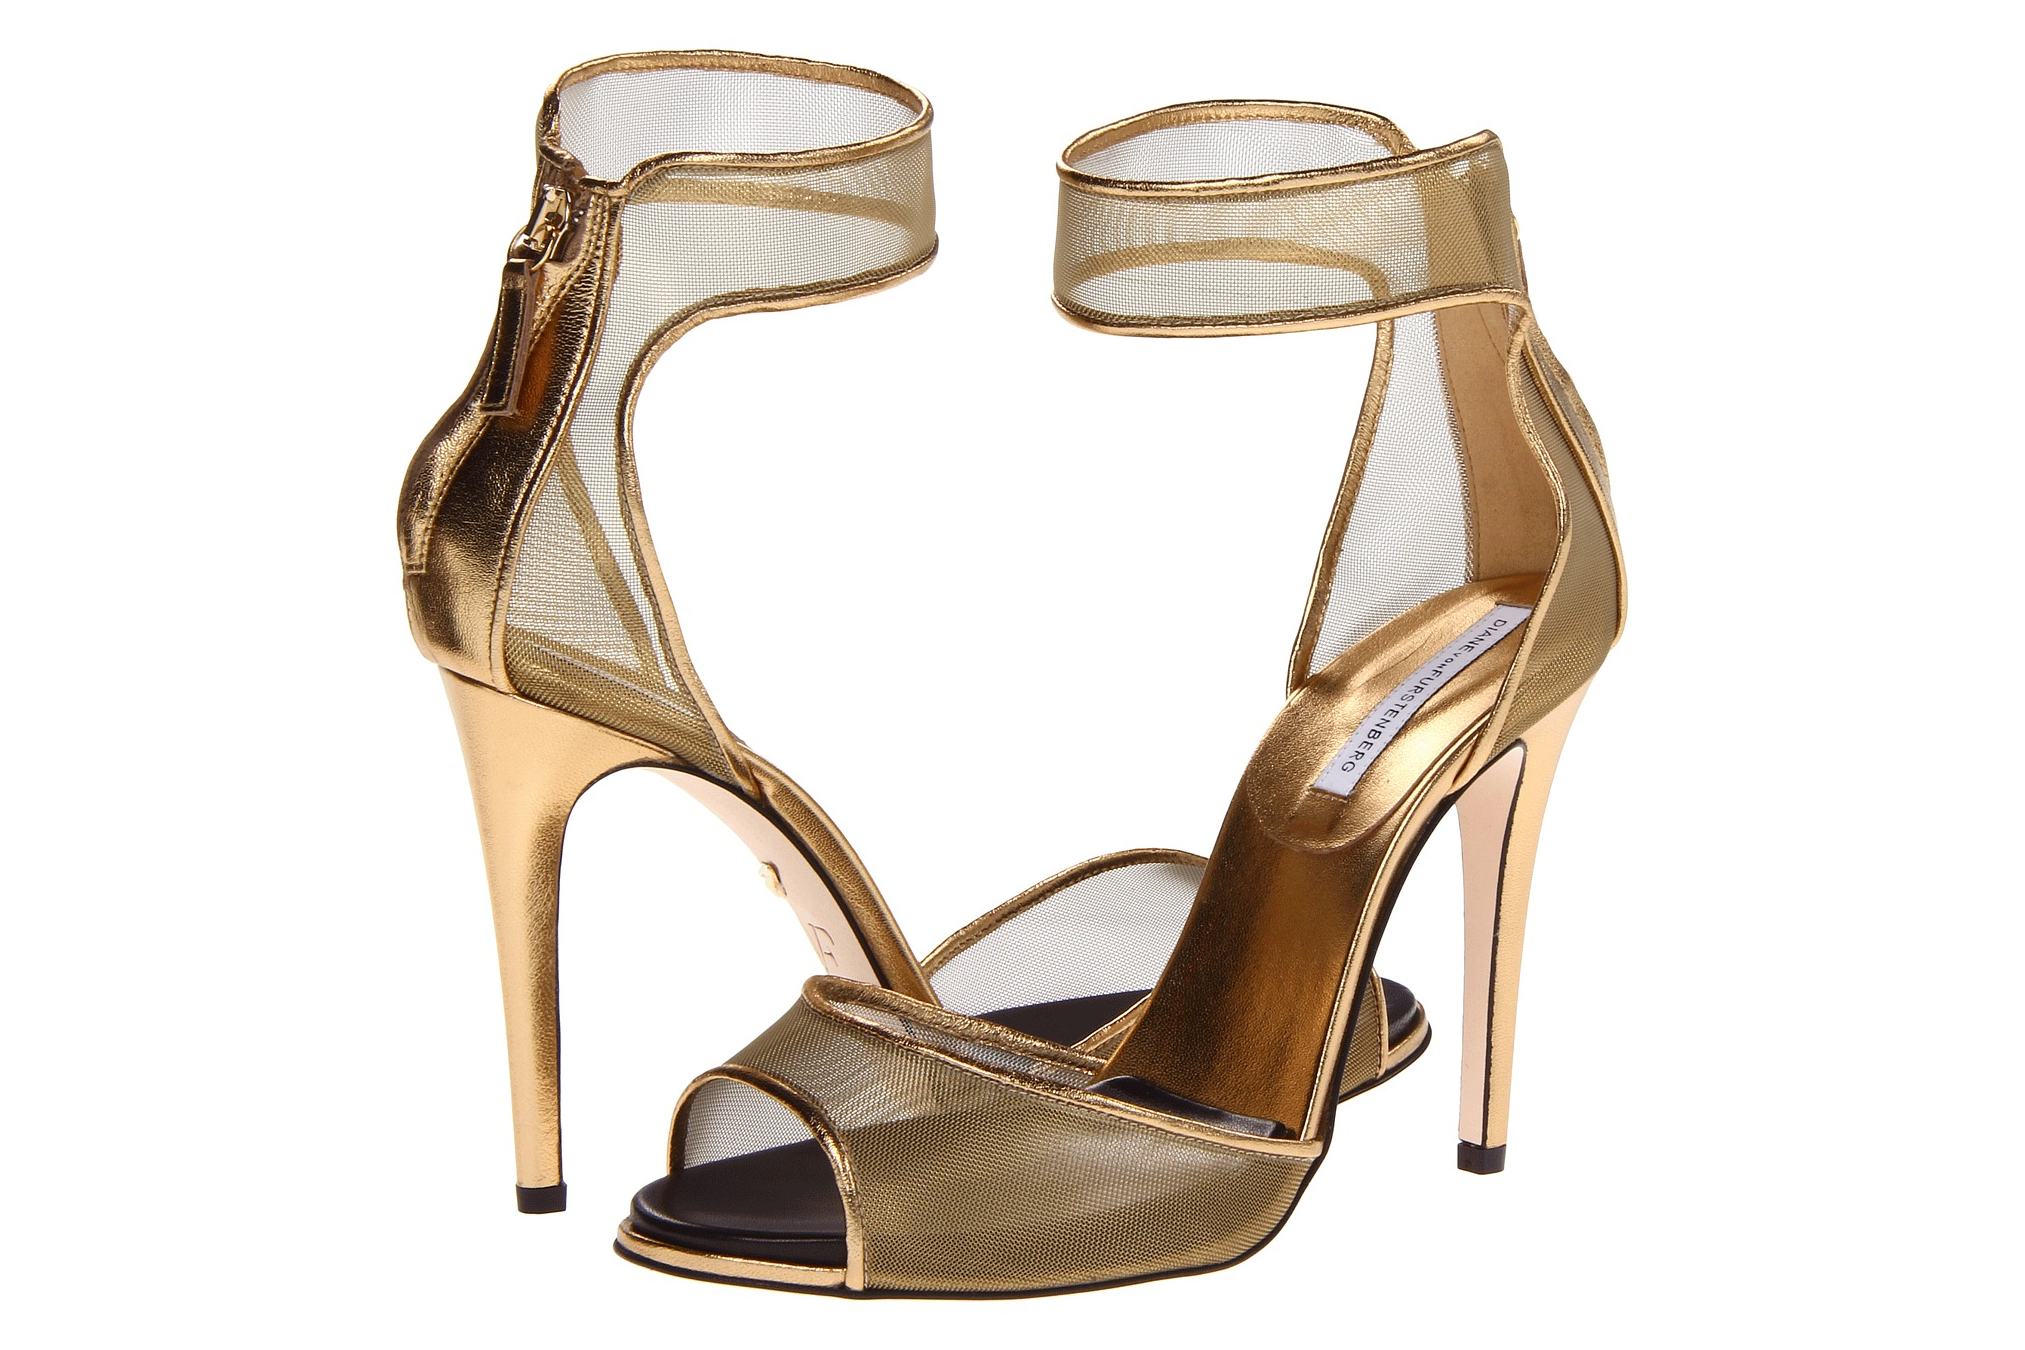 Glamorous gold wedding shoes DVF mesh | OneWed.com